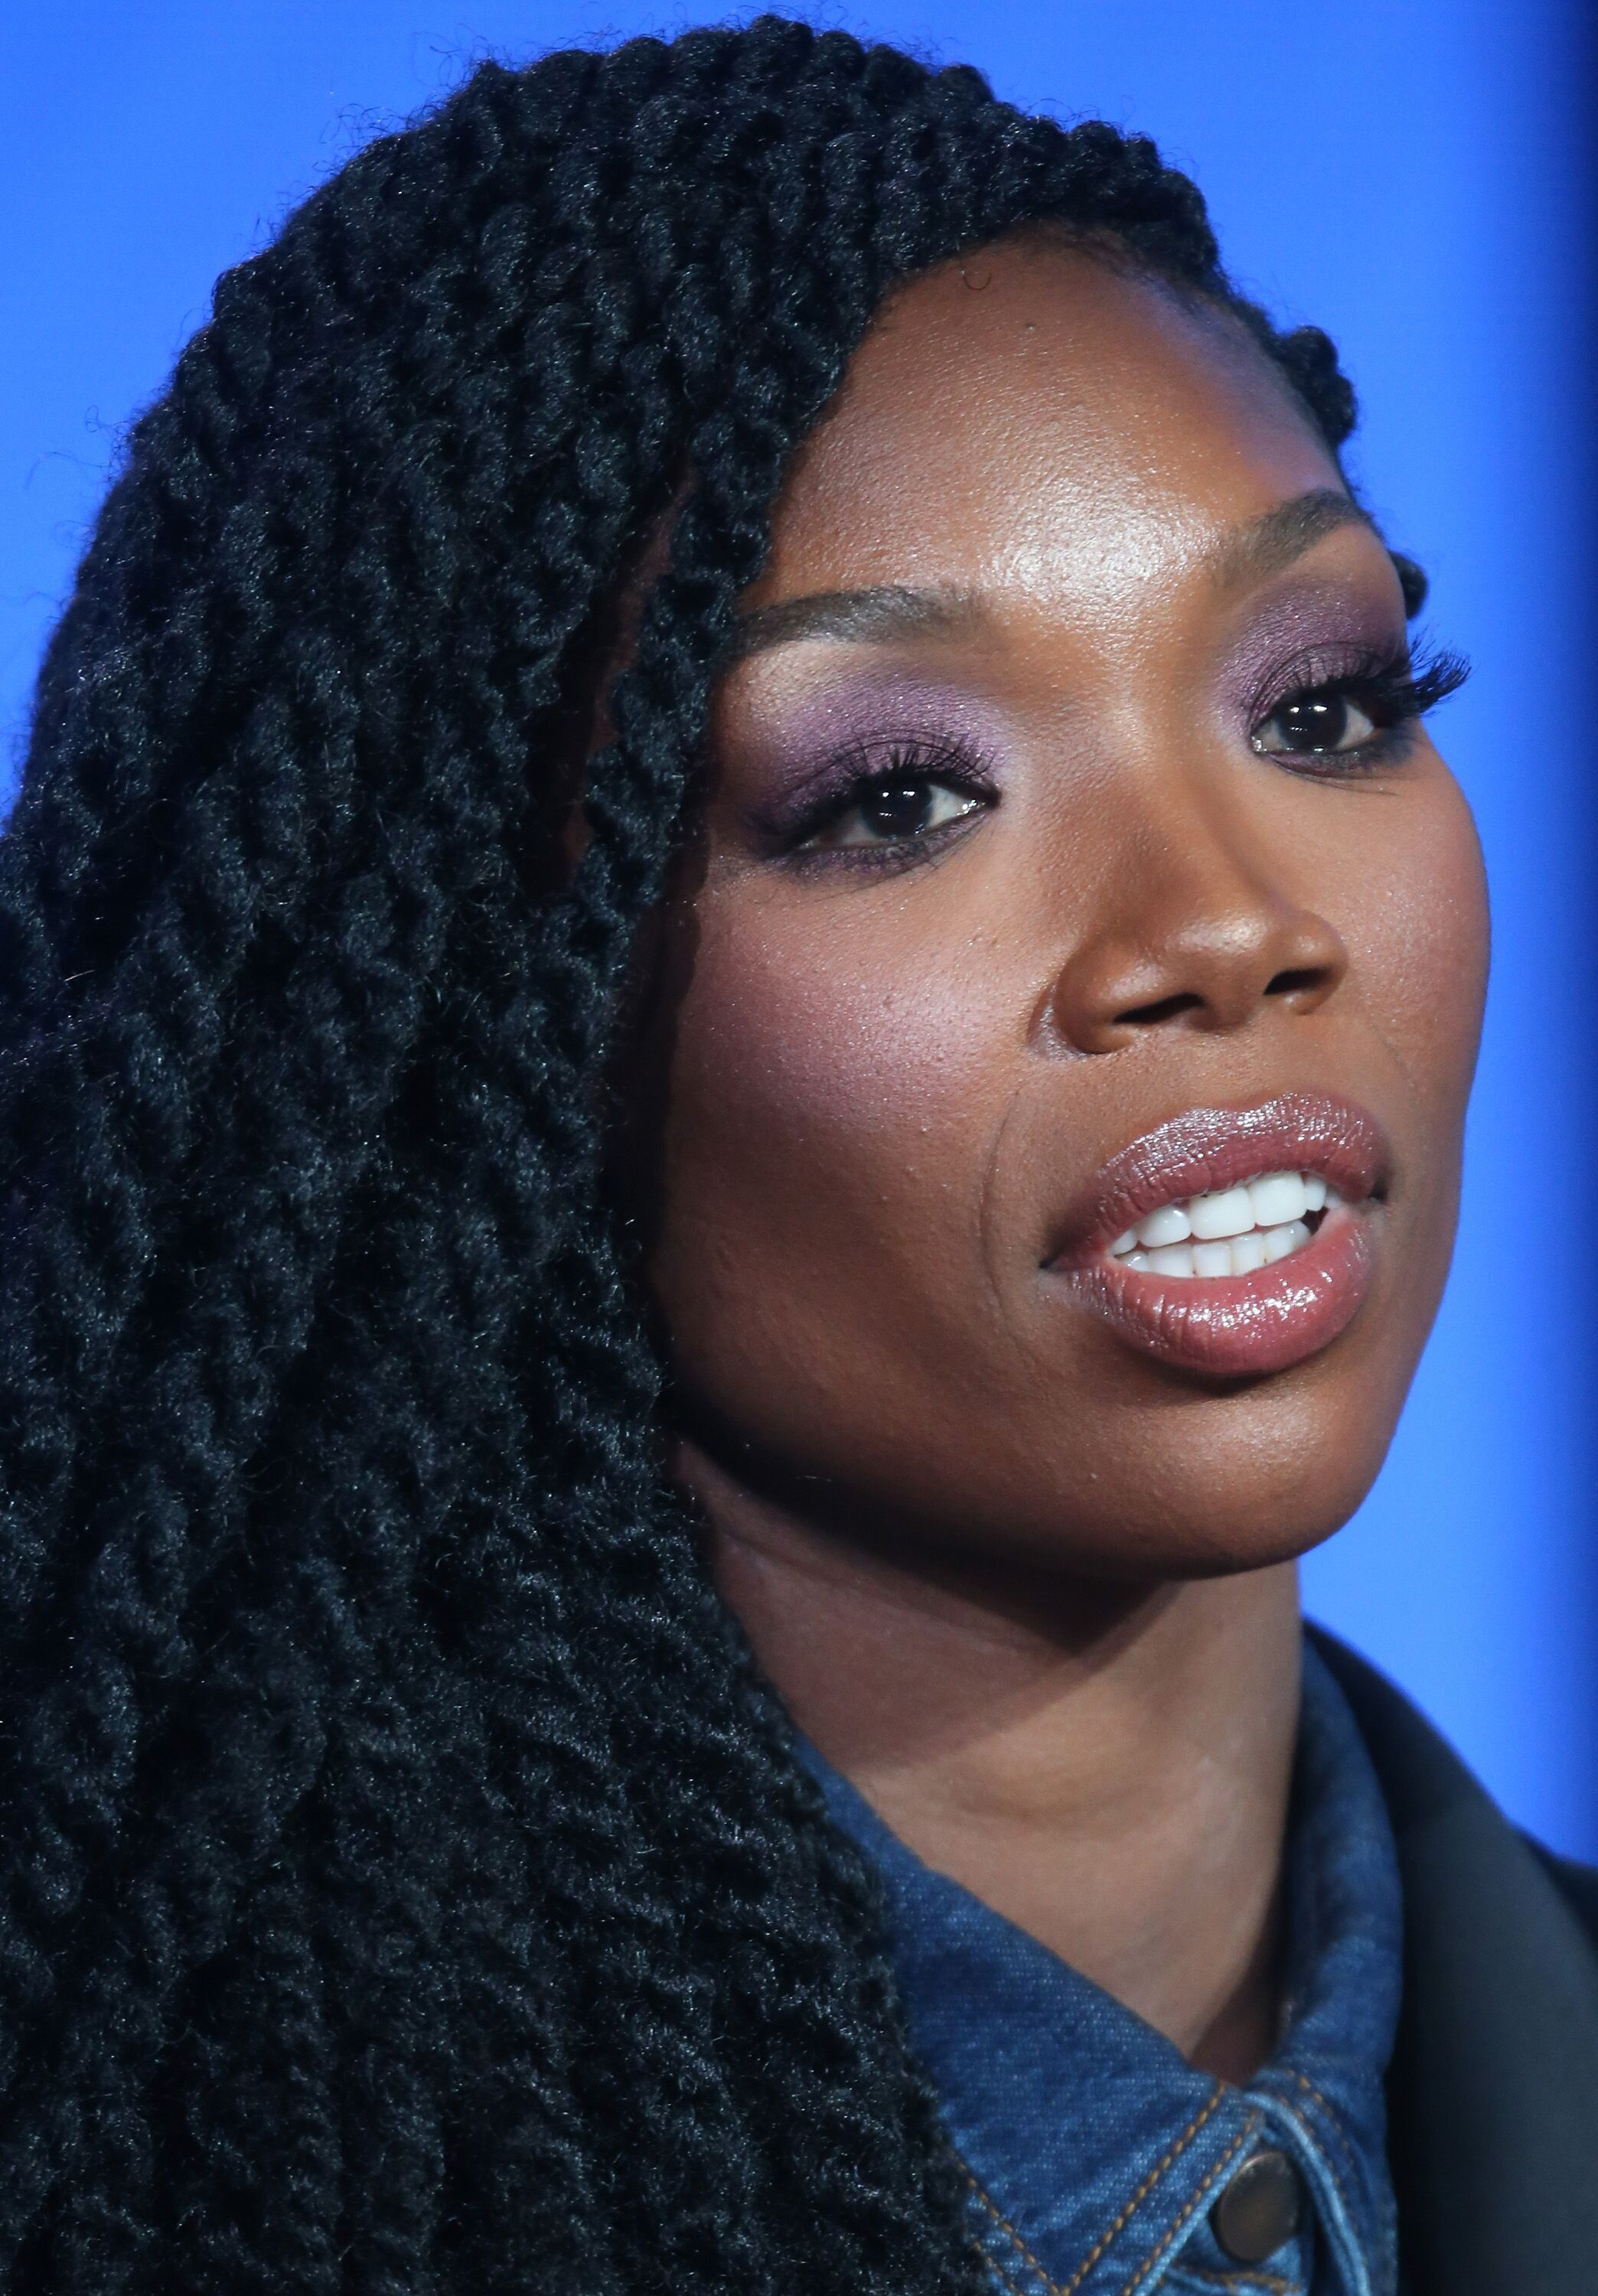 Actress Brandy Norwood speaks onstage during the BET-Zoe Ever After panel as part of the Viacom portion of This is Cable 2016 Television Critics Association Press Tour at Langham Hotel | Photo: Getty Images